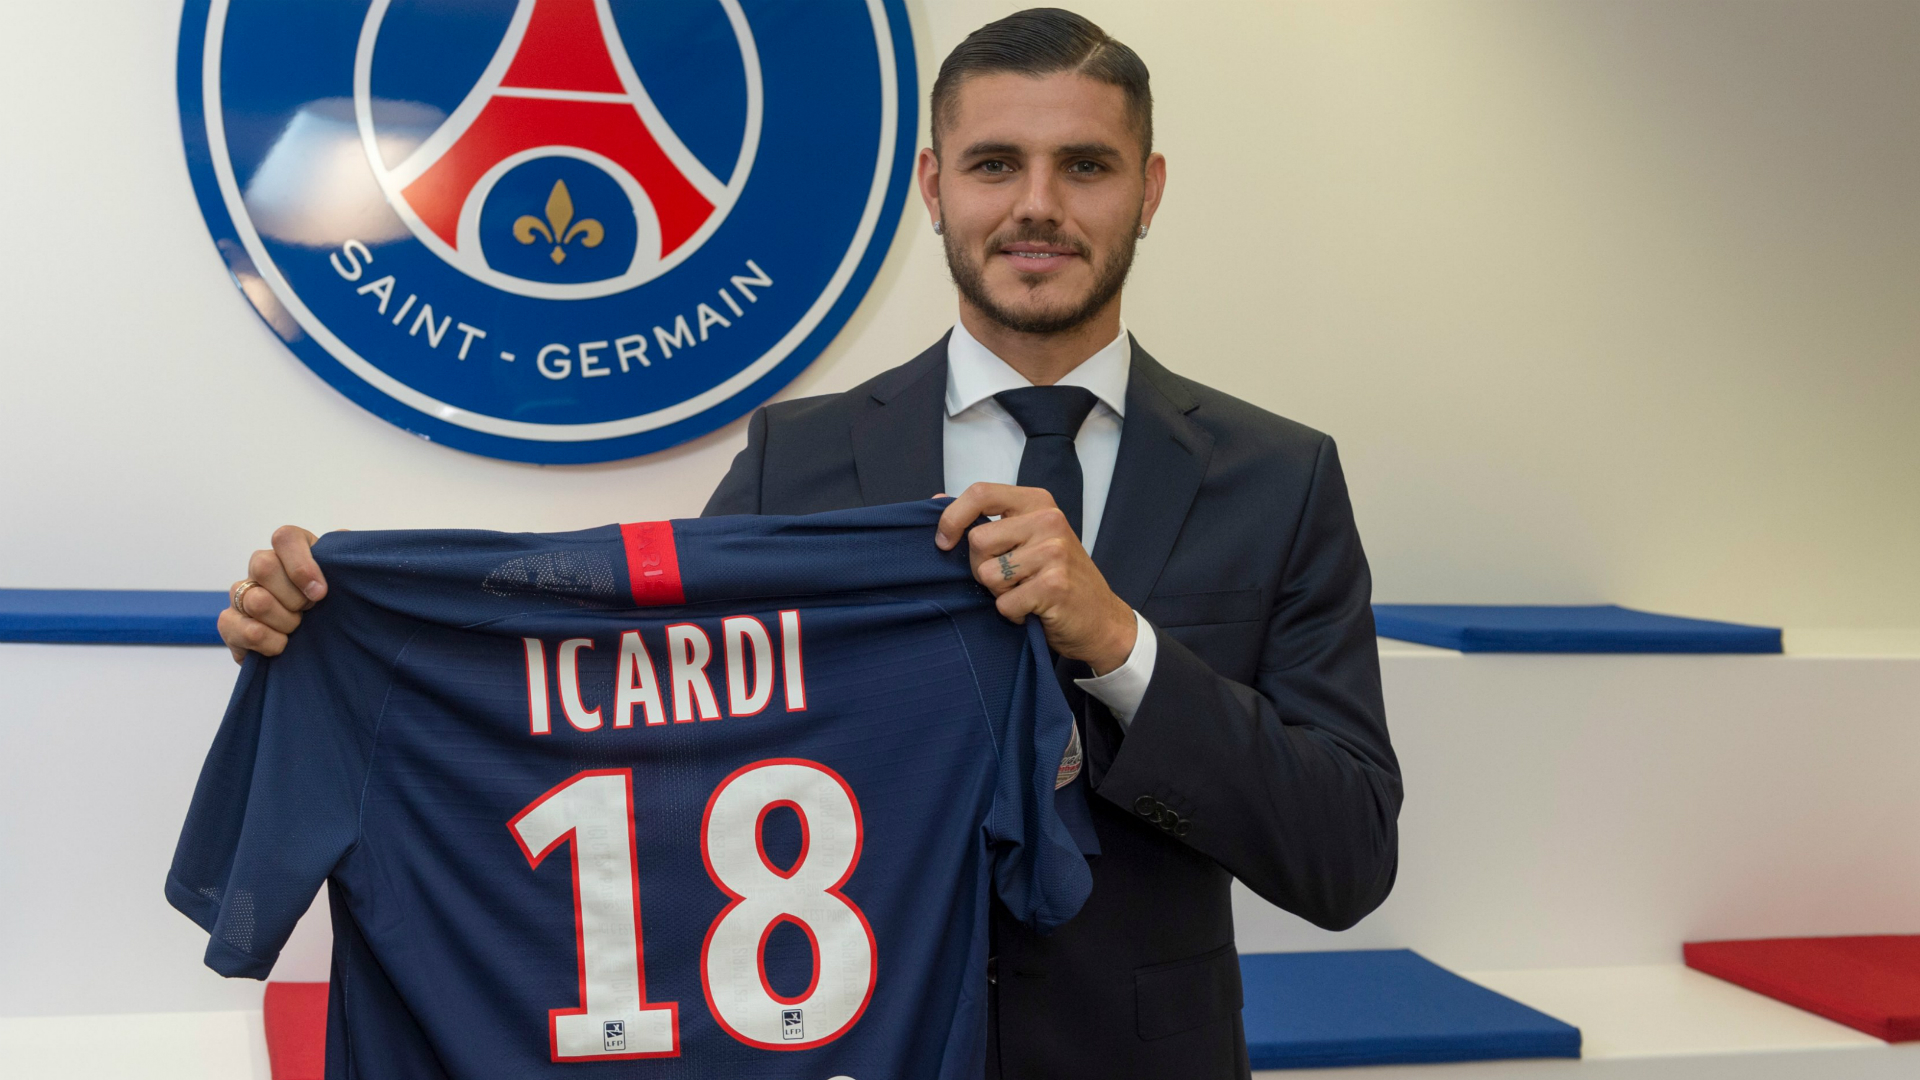 Former Italian forward Paolo Di Canio hit out at Mauro Icardi following his move to Paris Saint-Germain.